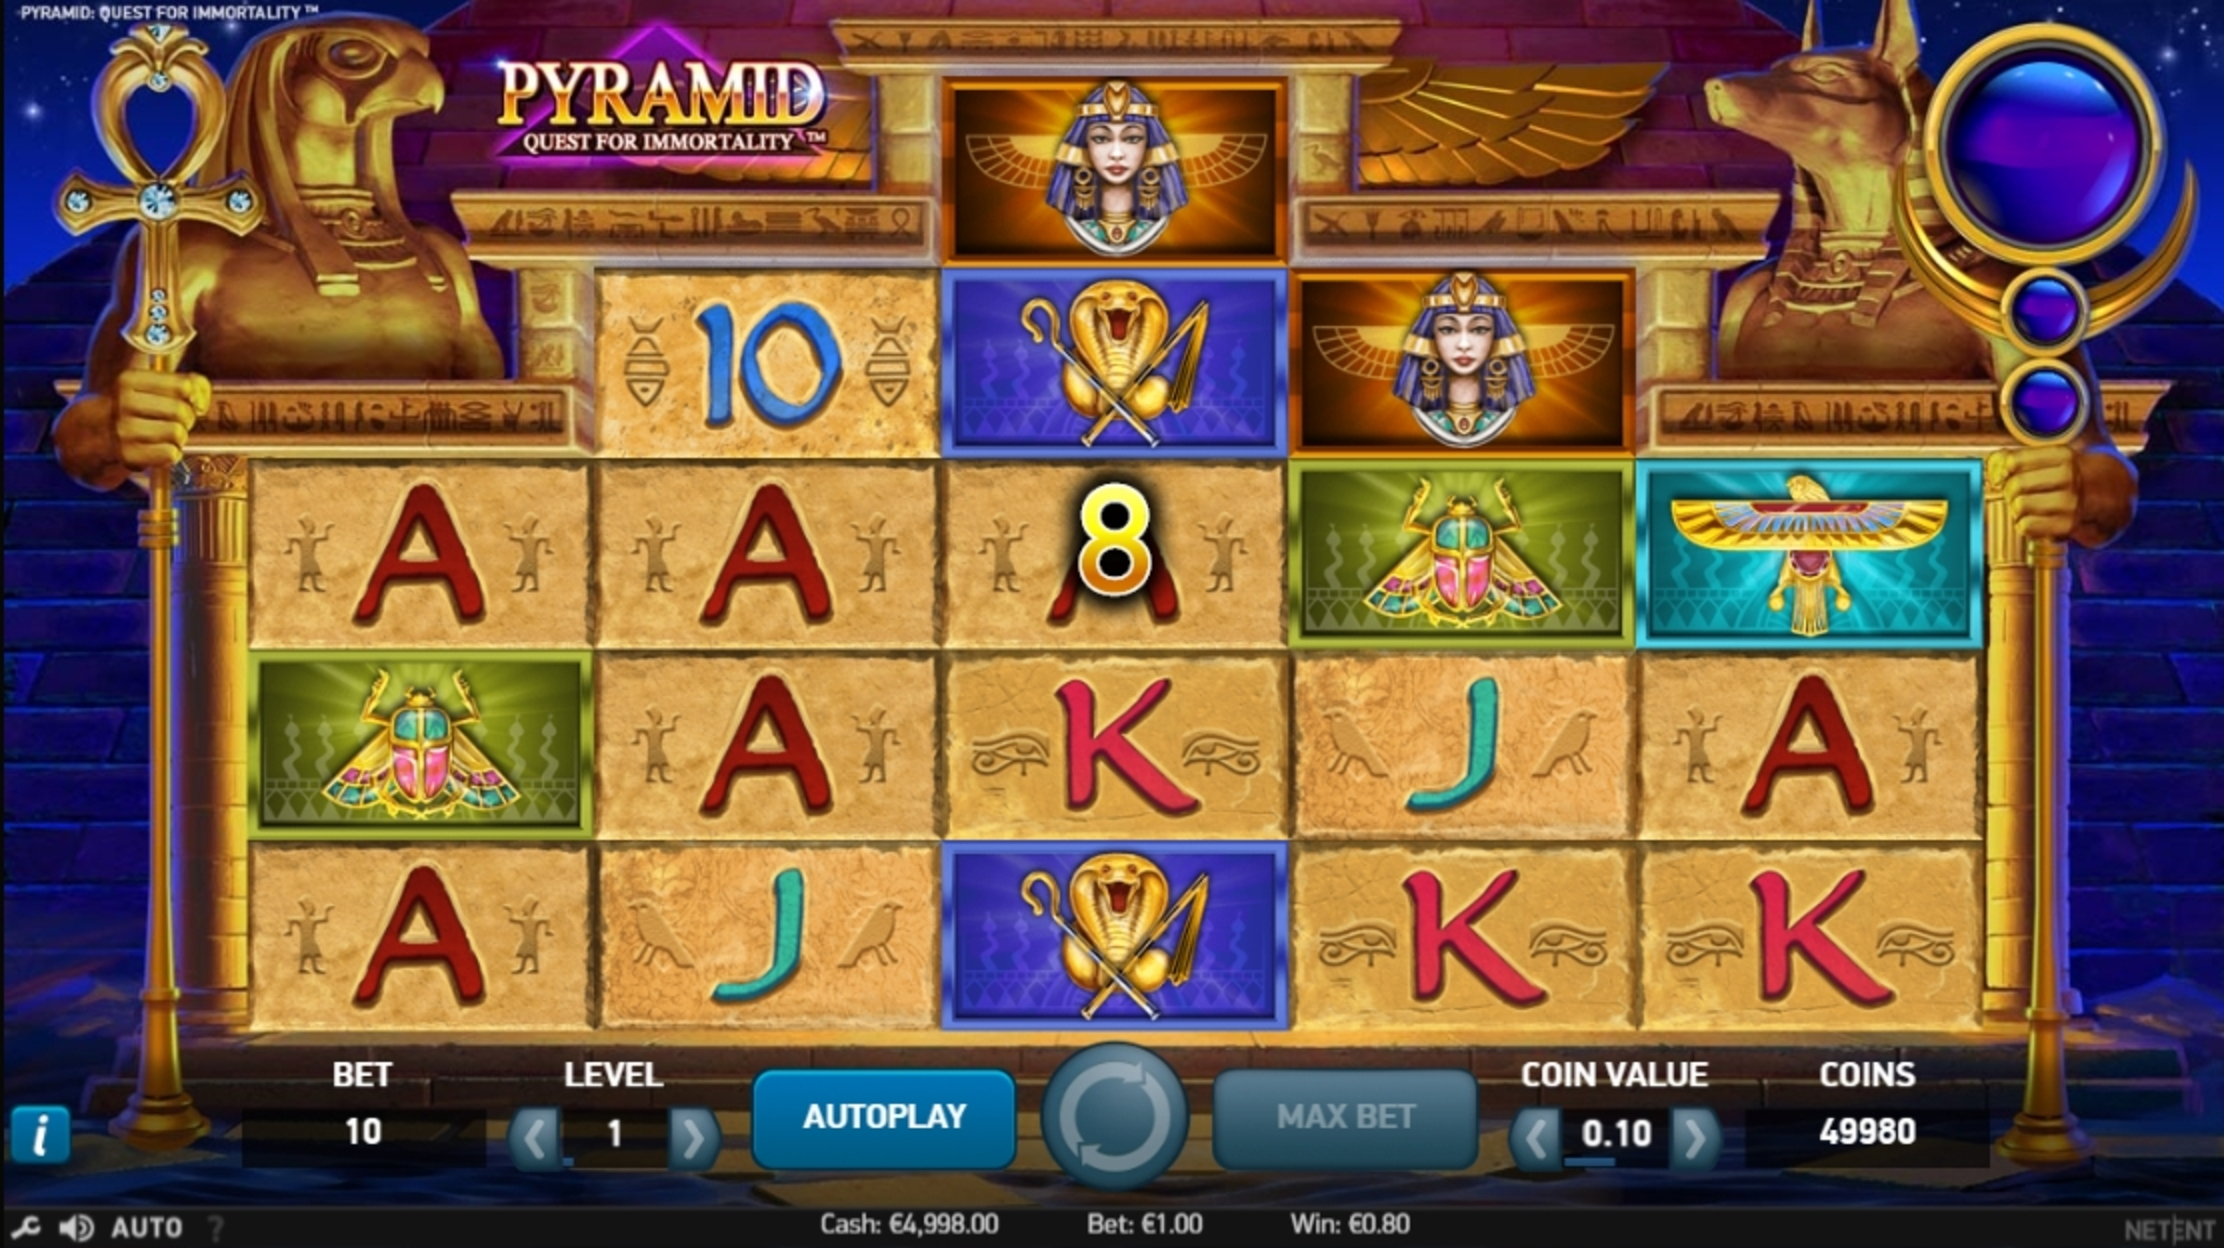 Win Money in Pyramid: Quest for Immortality Free Slot Game by NetEnt